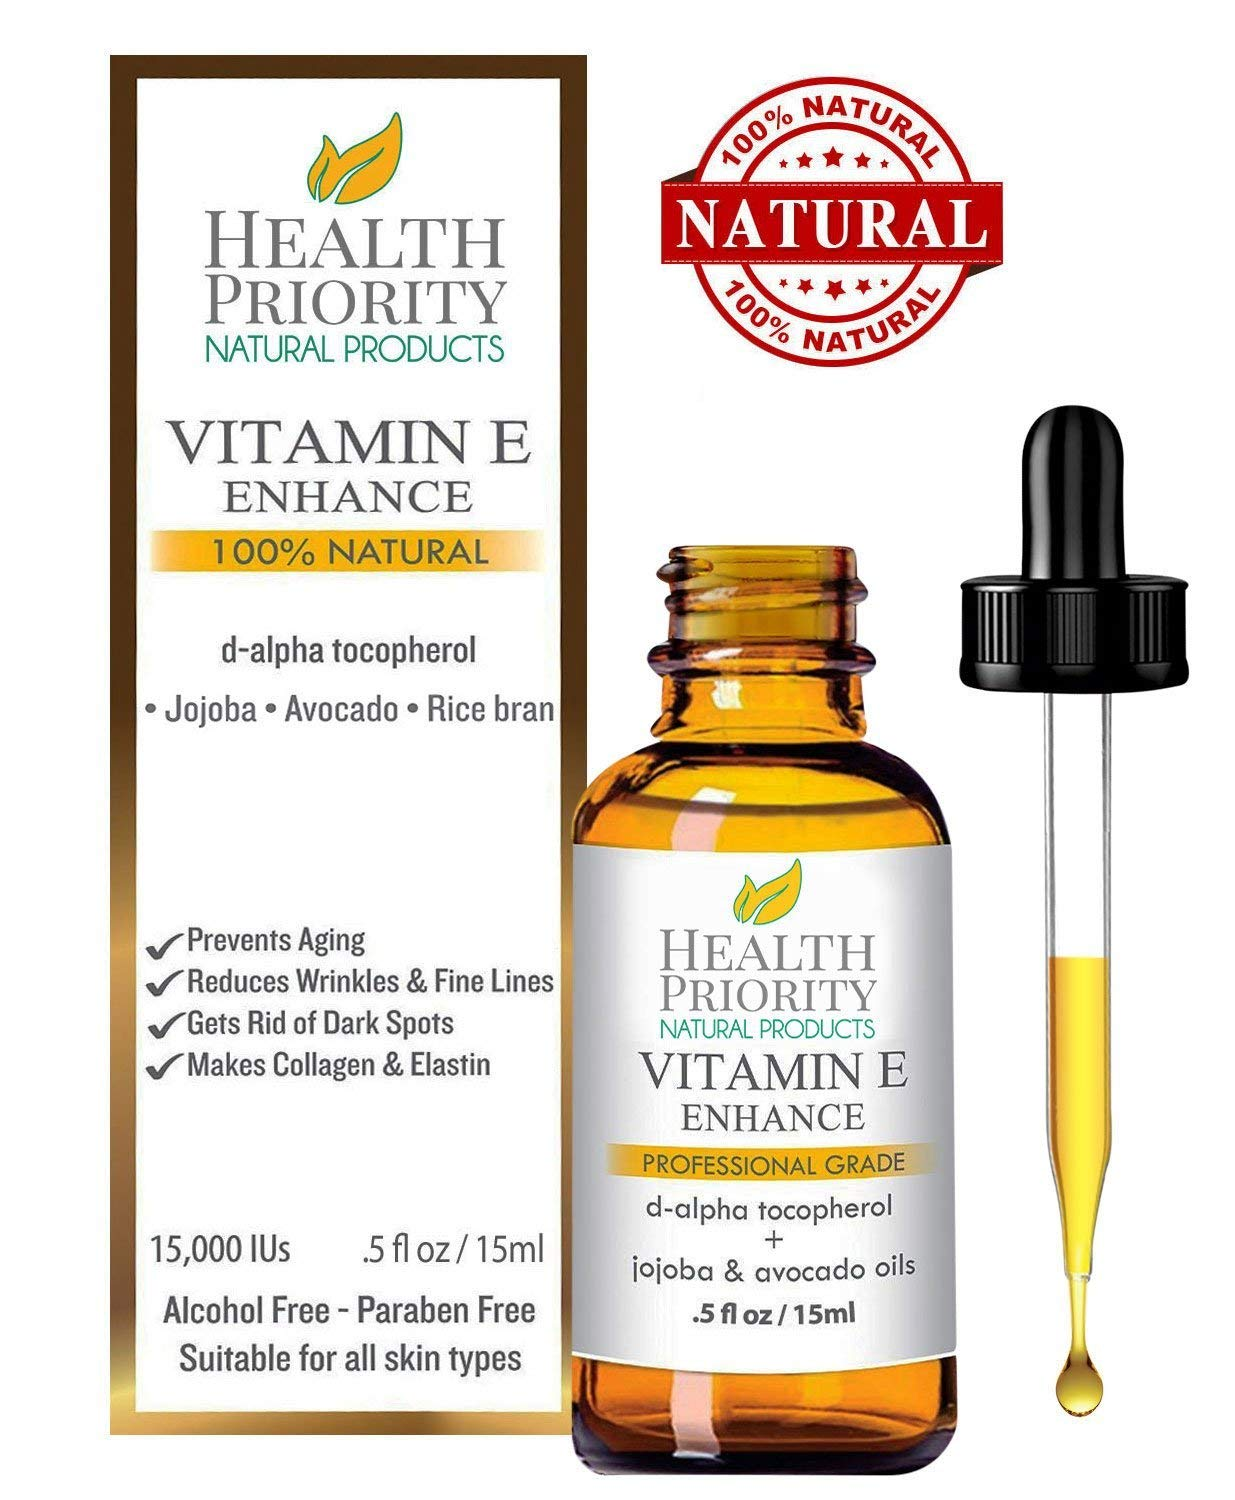 100% Natural & Organic Vitamin E Oil For Your Face & Skin, Unscented - 15,000/30,000 IU - Reduces Wrinkles & Fade Dark Spots. Essential Drops Are Lighter Than Ointment. Raw Vit E Extract Sunflower. by Health Priority Natural Products